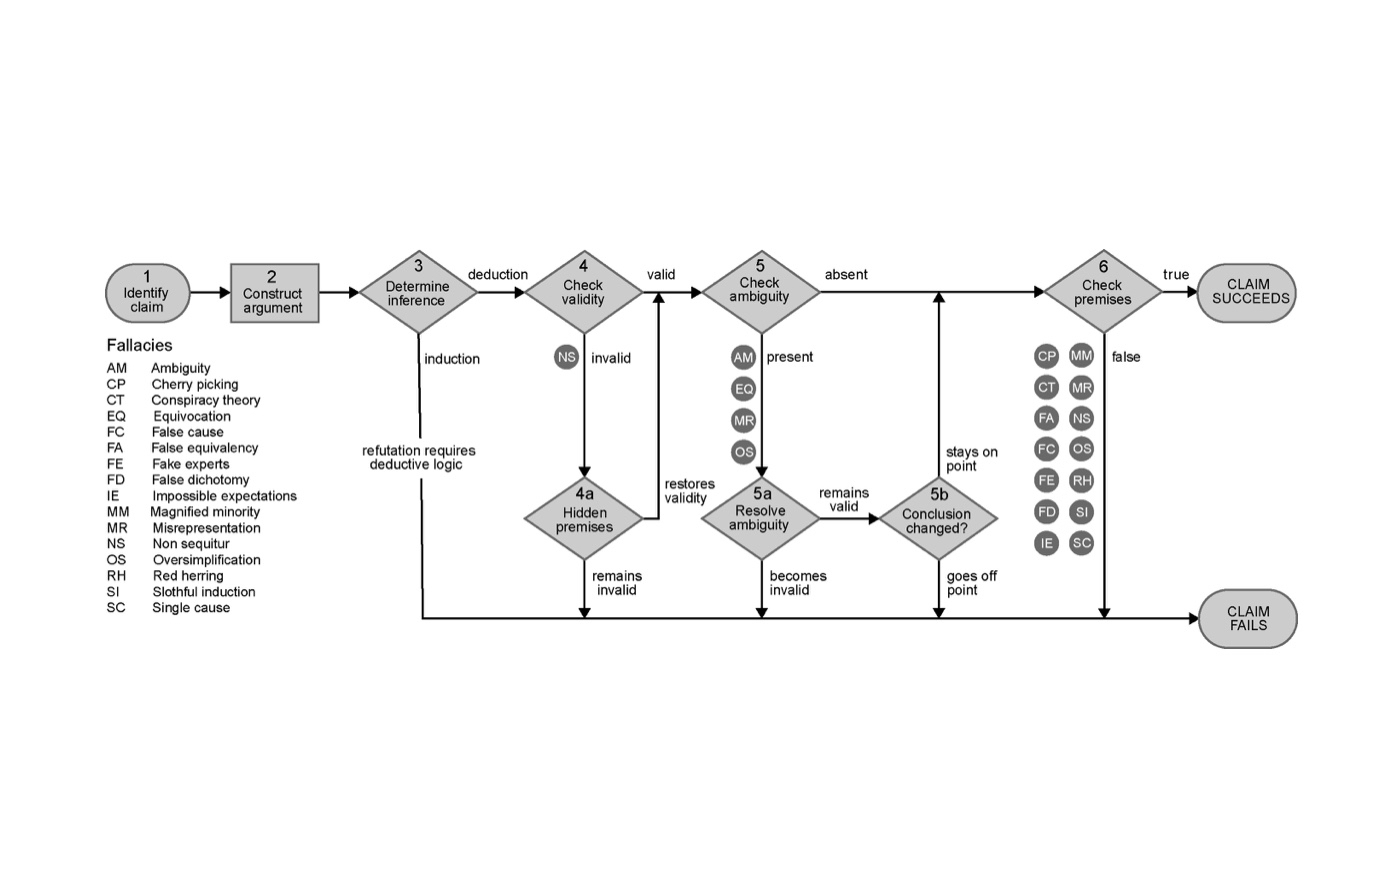 Evaluate an argument with just one flowchart nick byrd phd evaluate an argument with just one flowchart nick byrd phd candidate nvjuhfo Image collections